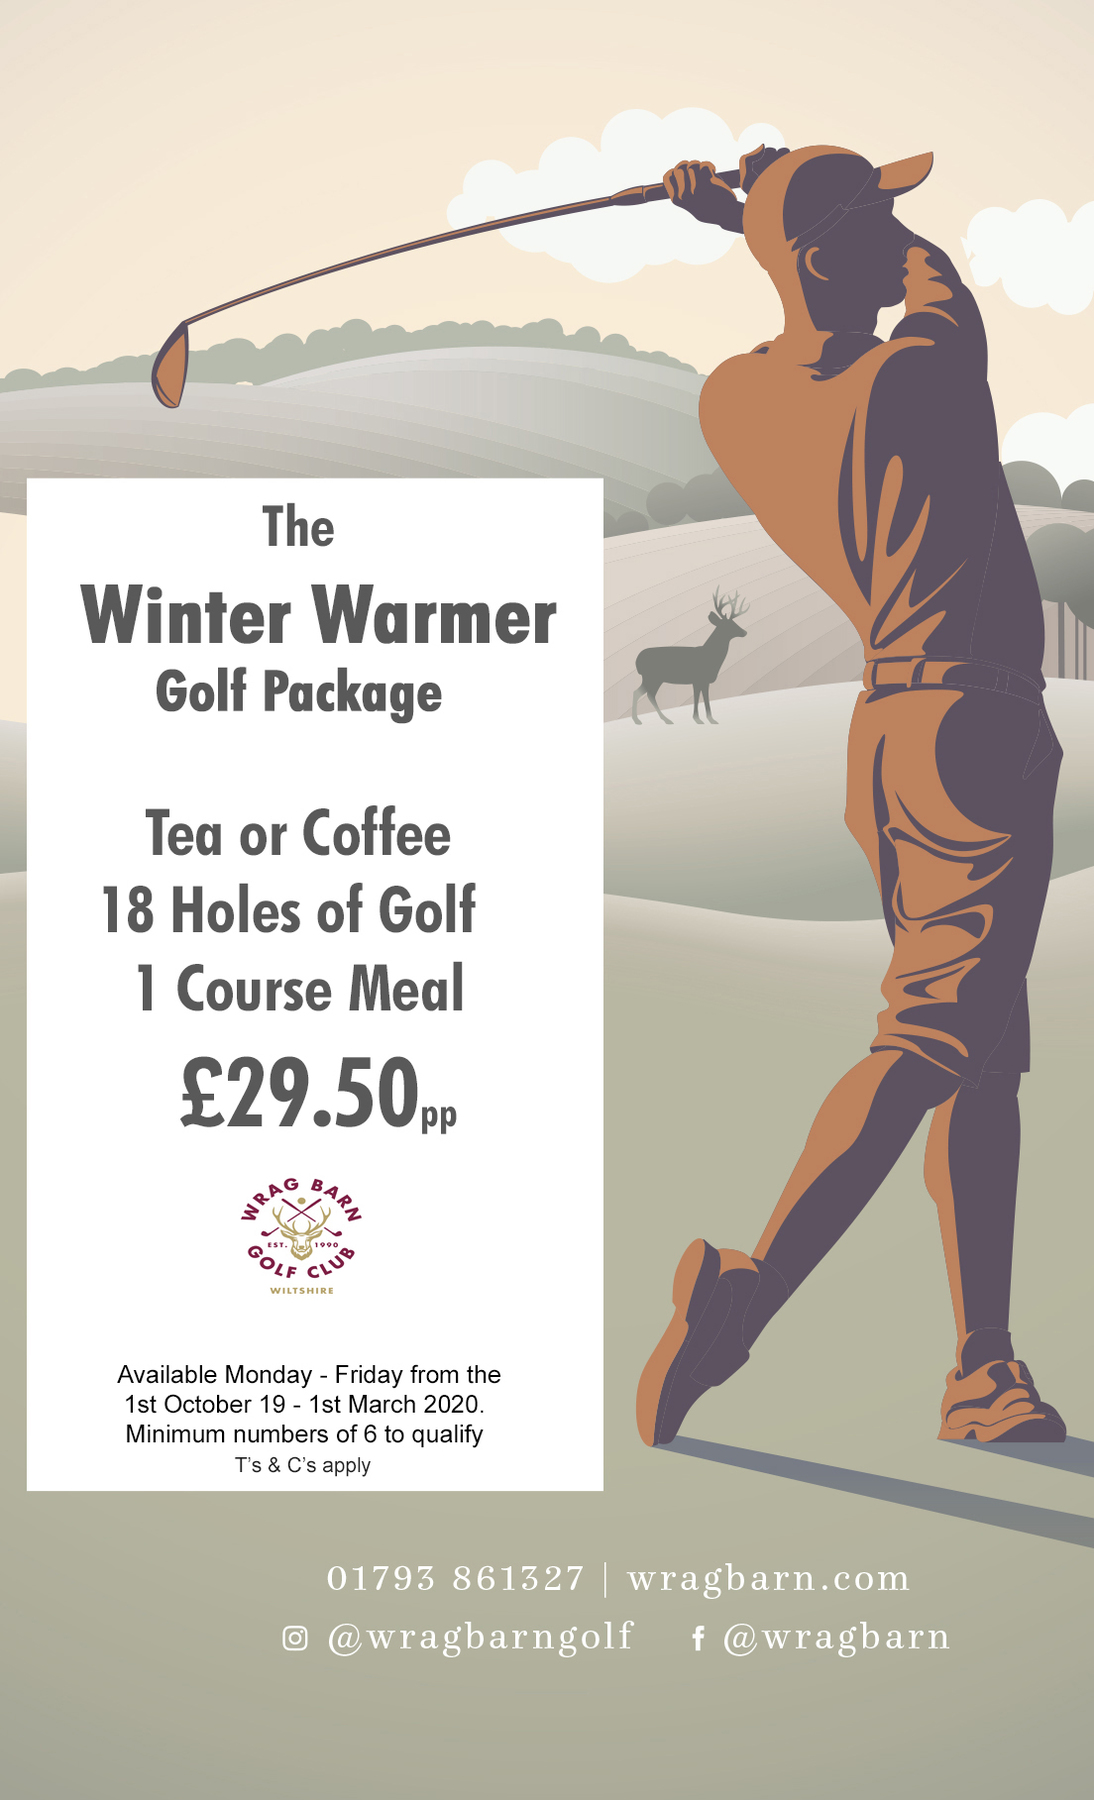 The Winter Warmer Golf Package